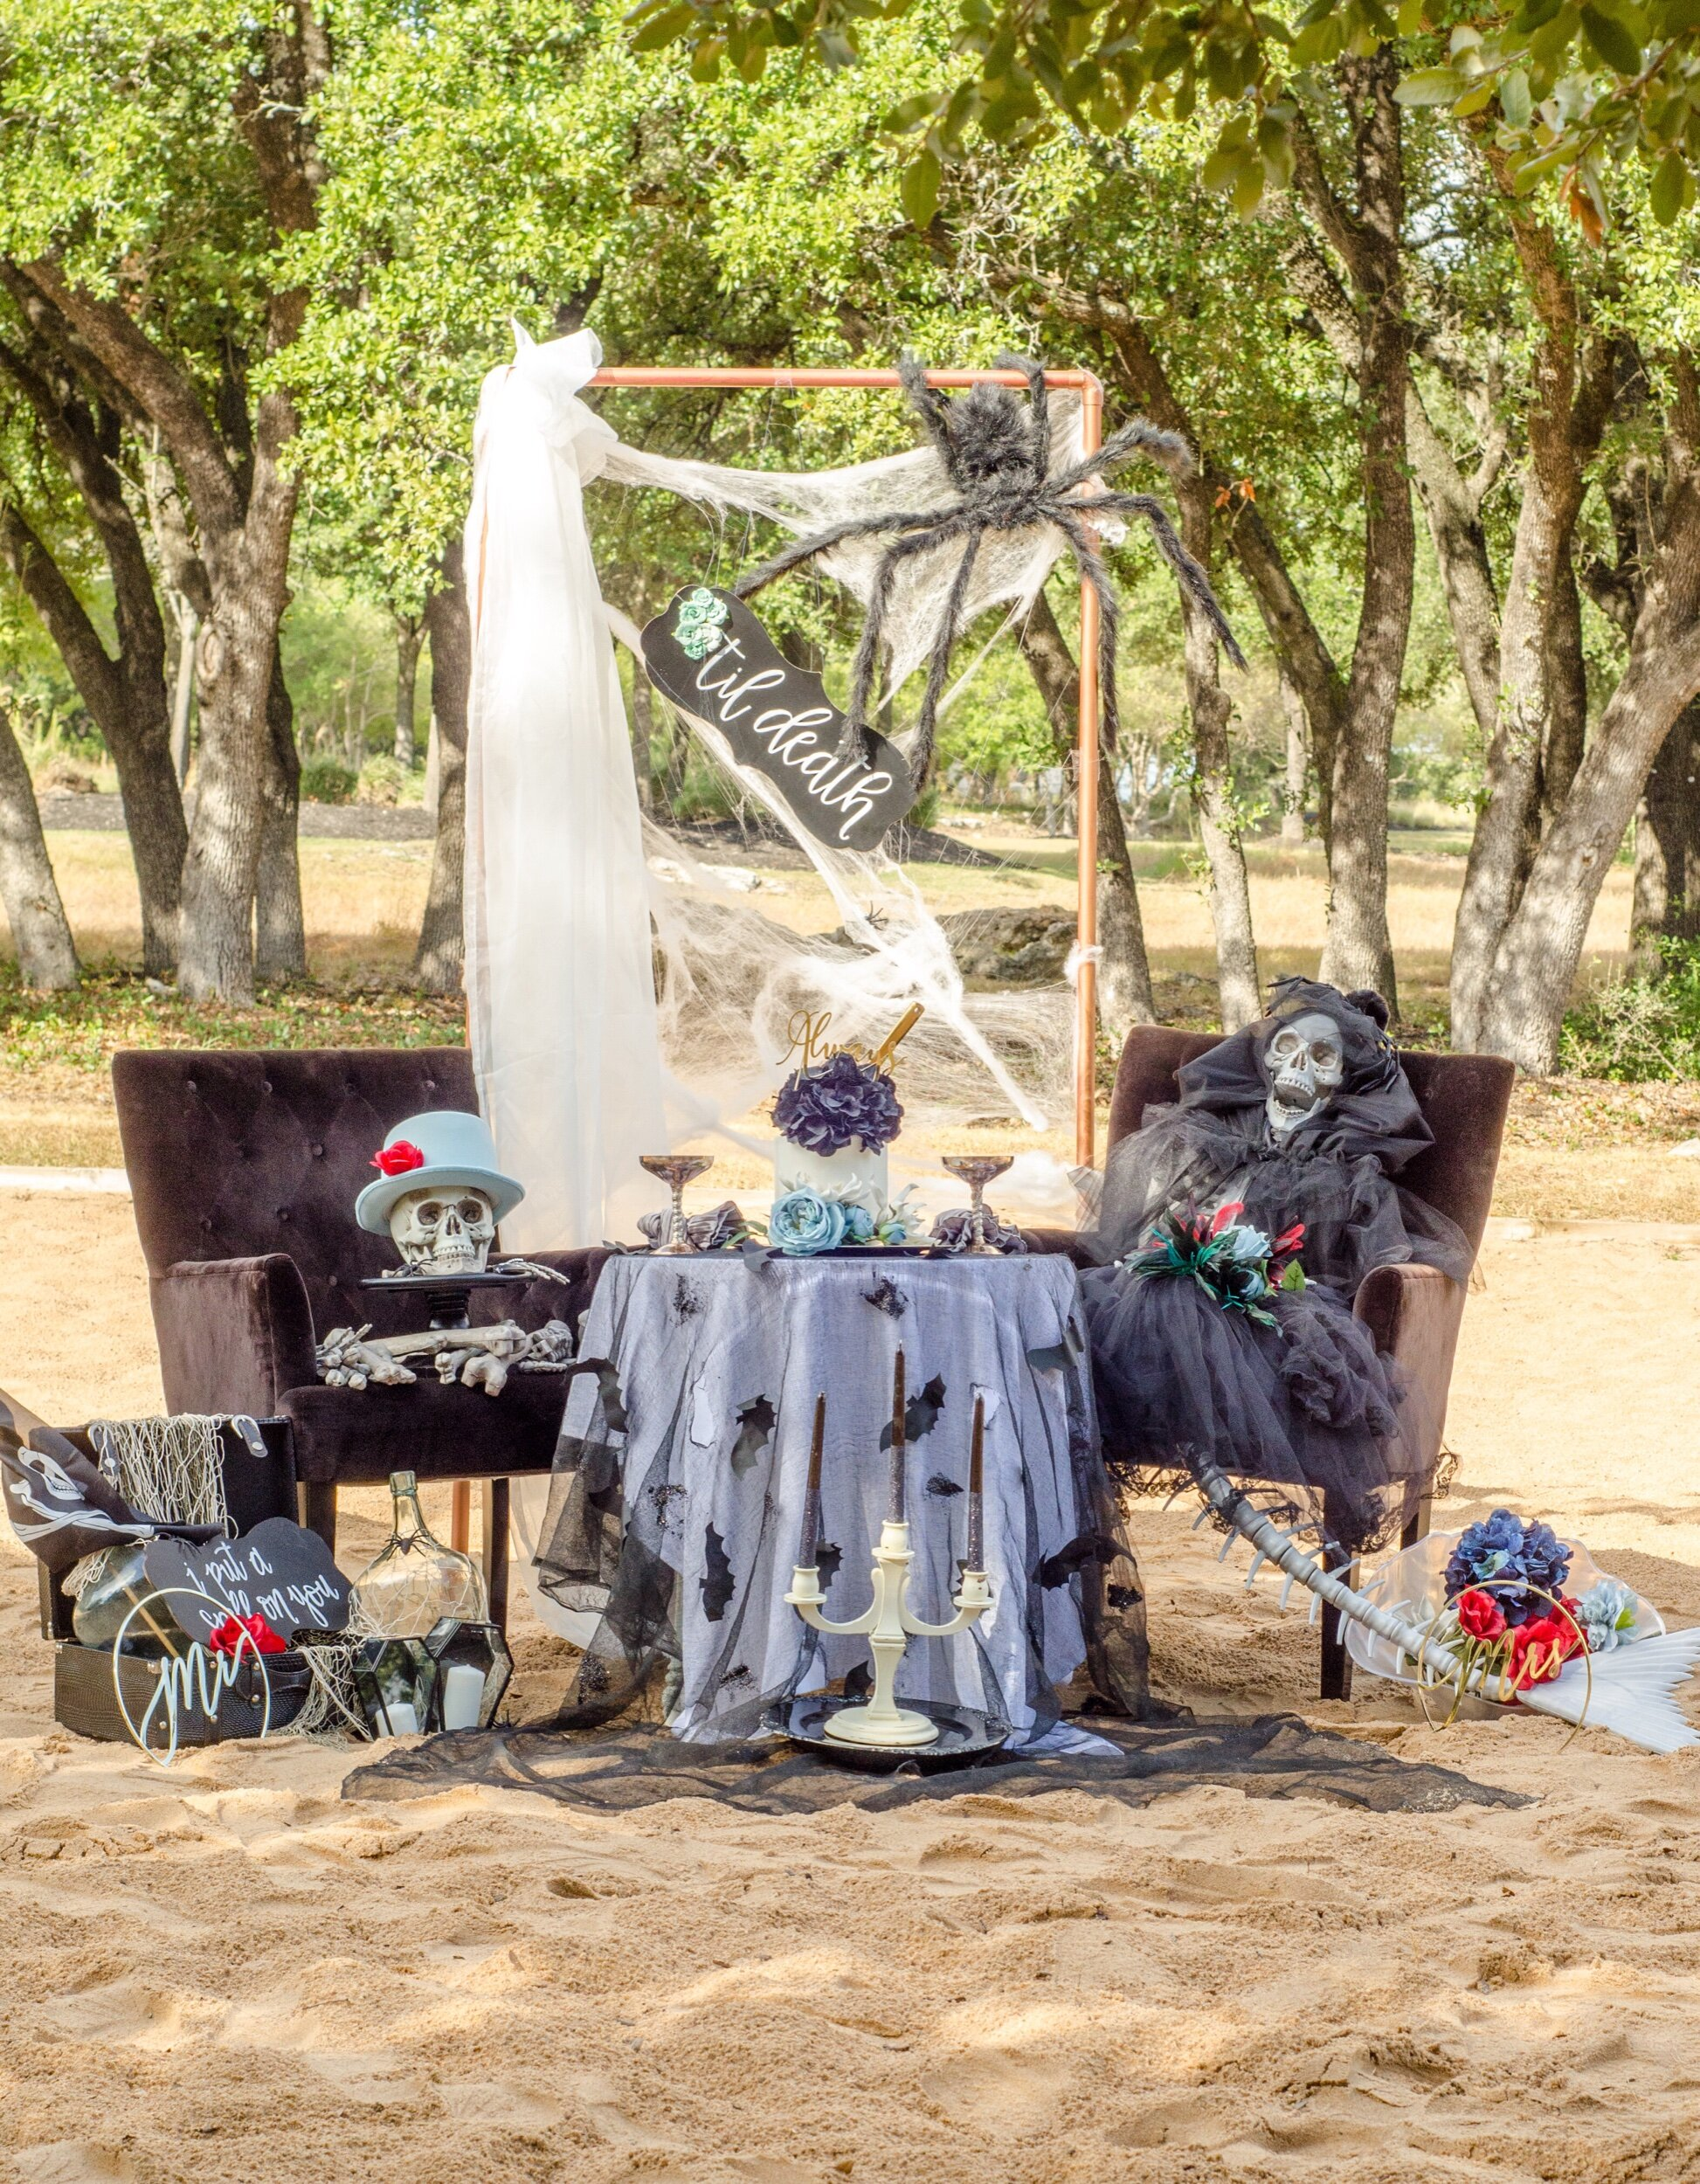 Mermaid & Pirate skeleton Halloween display idea from Mint Event Design. There is so much you could do with this gothic wedding display. It would be great as a photo station at a party, front porch decor, or as a focal point at a Halloween themed wedding.